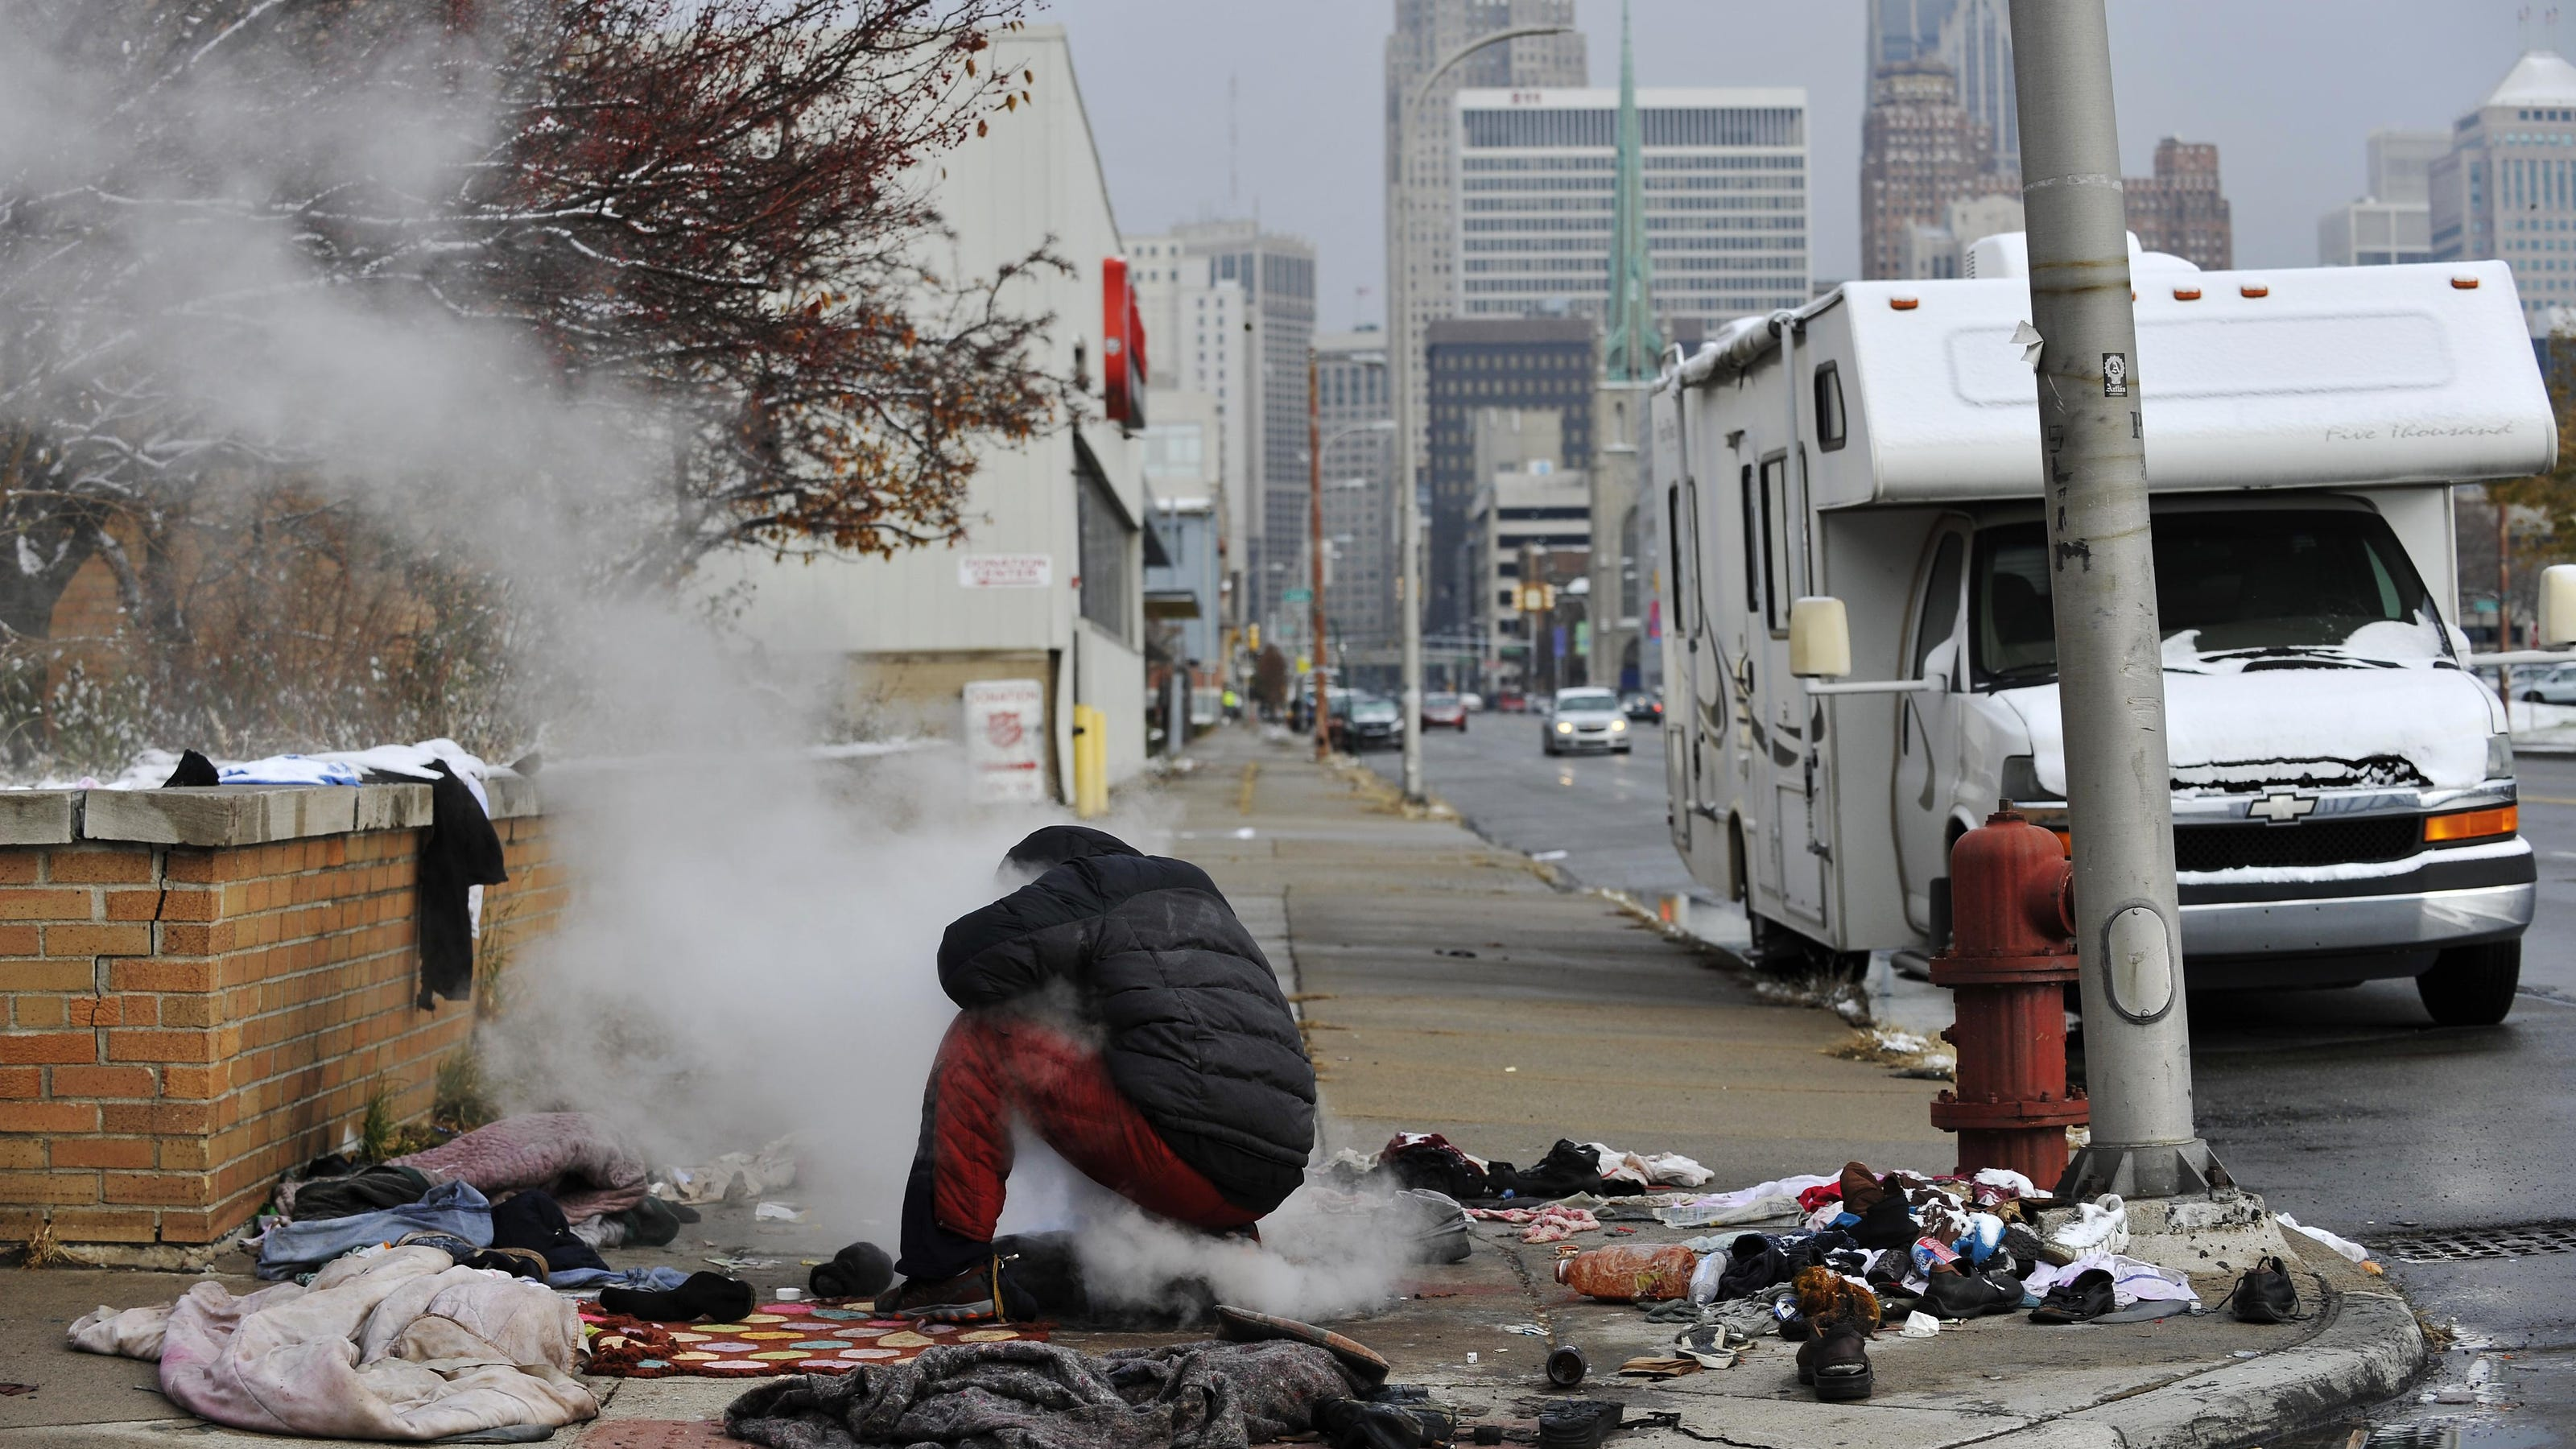 Folsom: The path to poverty in Detroit